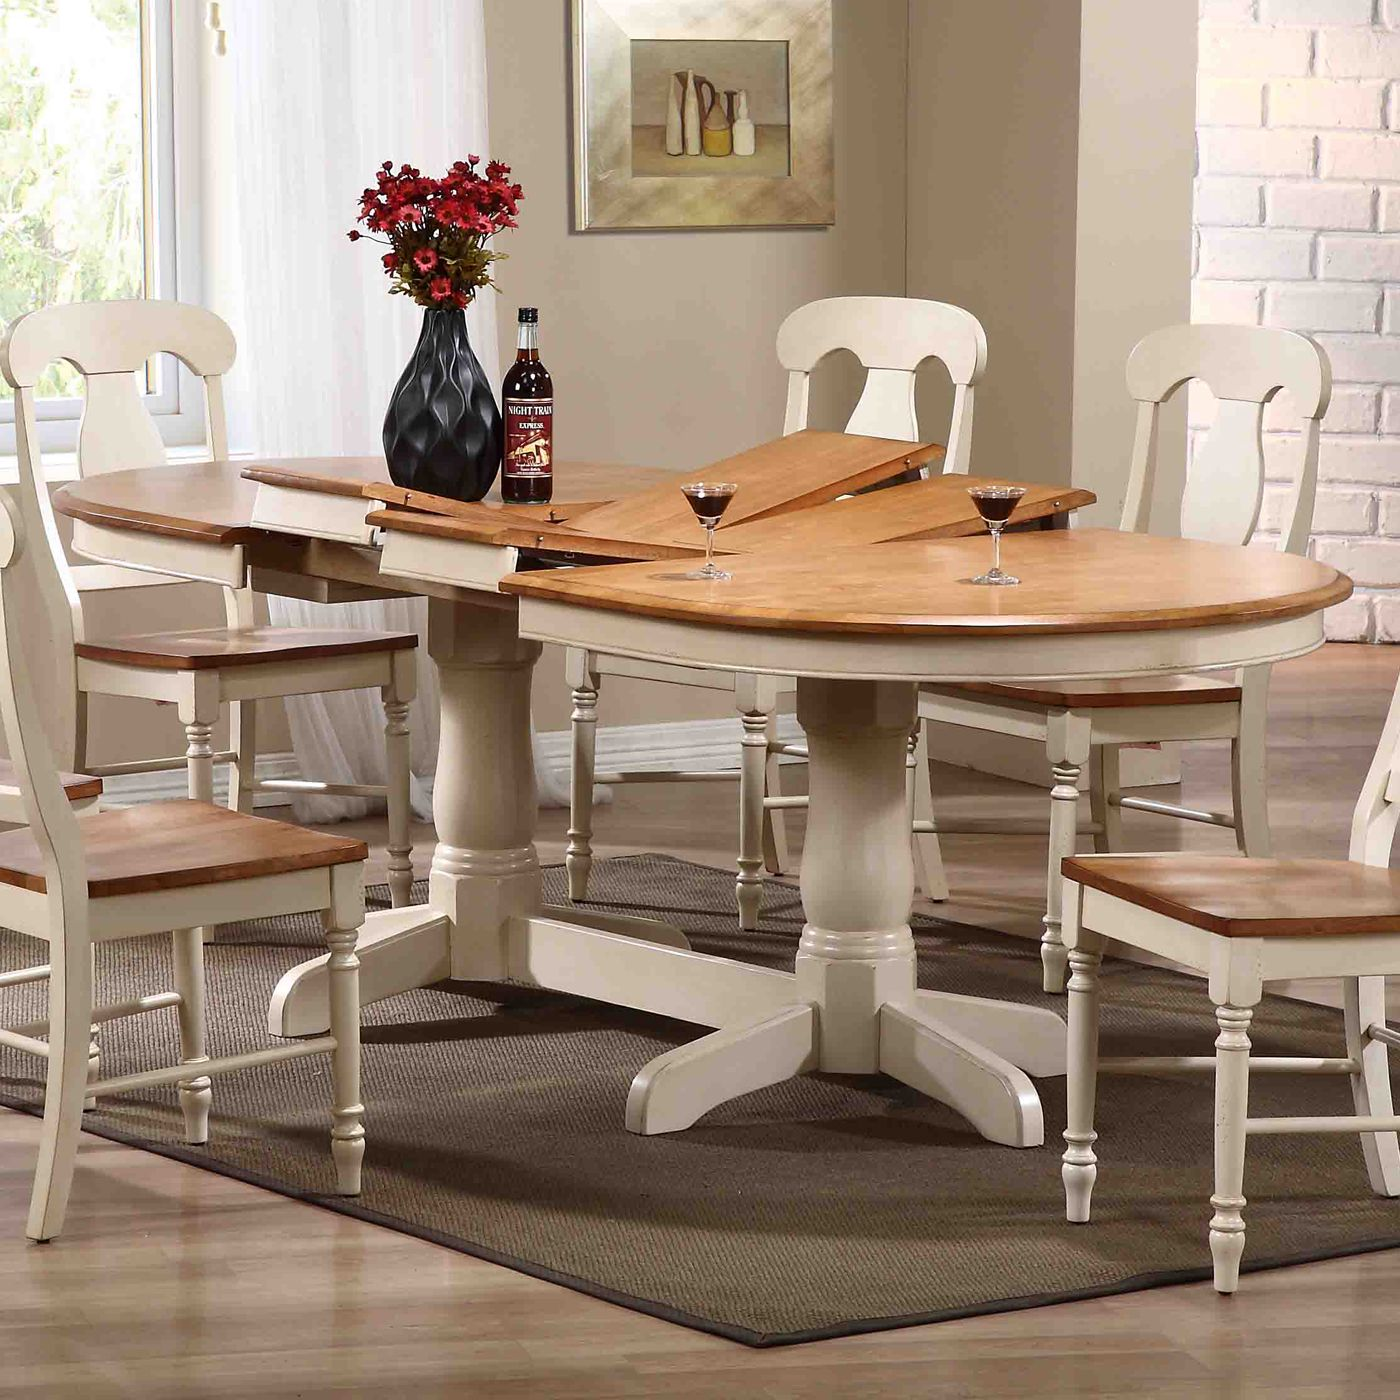 Shop Iconic Furniture Oval Double Butterfly Leaf Dining Table At Atg Stores Browse Our Din Oval Table Dining Farmhouse Kitchen Tables Extendable Dining Table